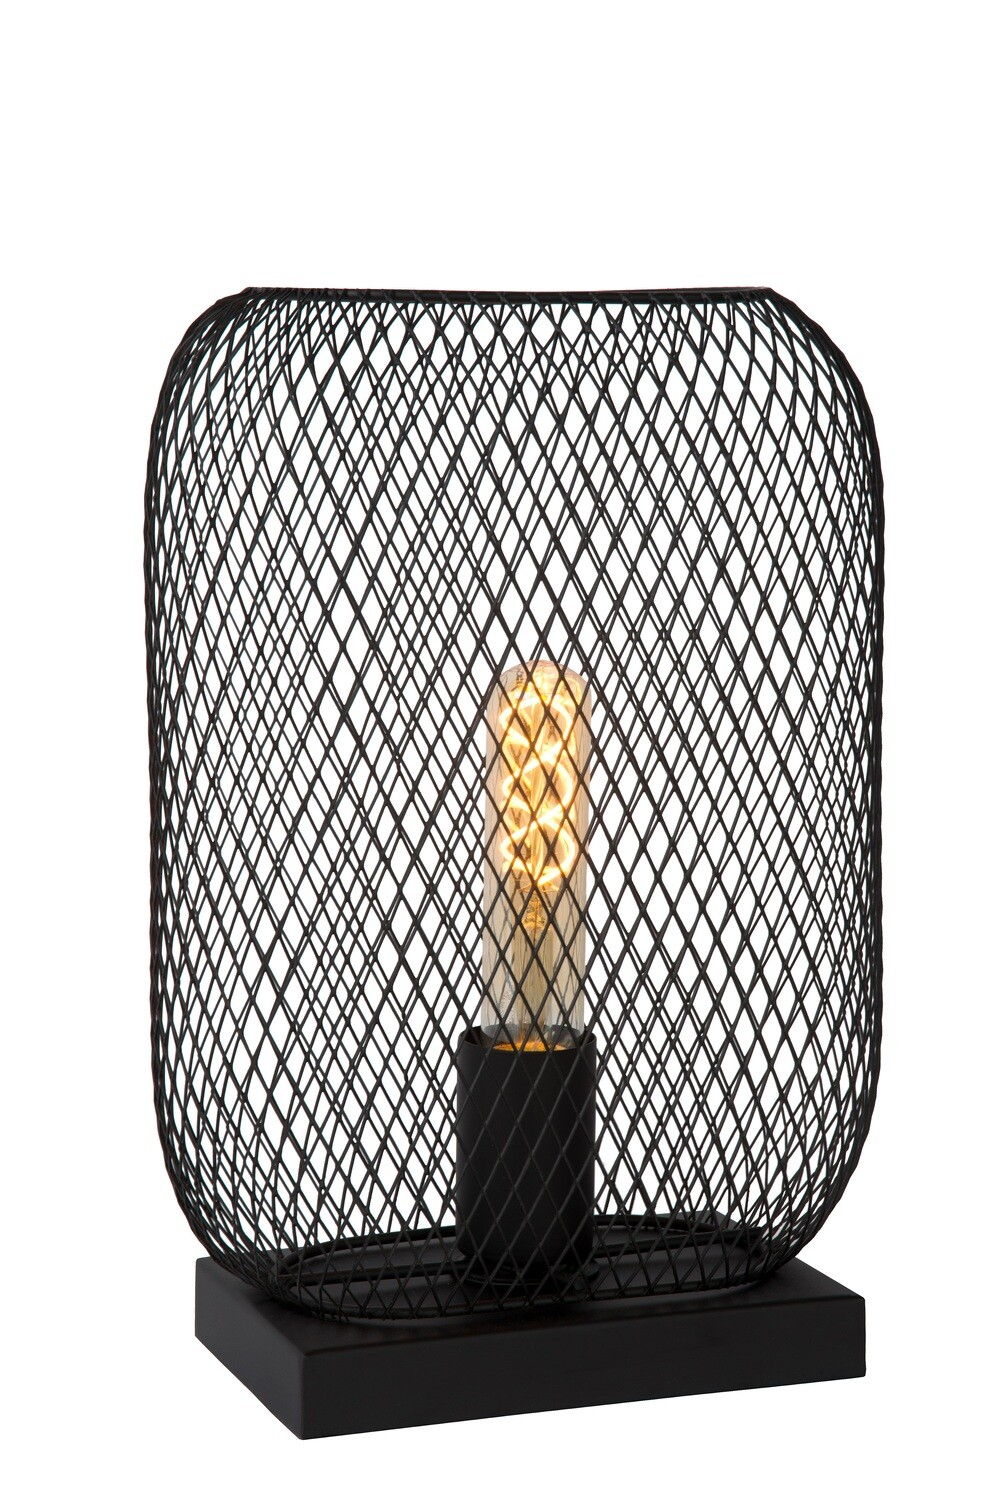 MESH Table lamp E27 Black